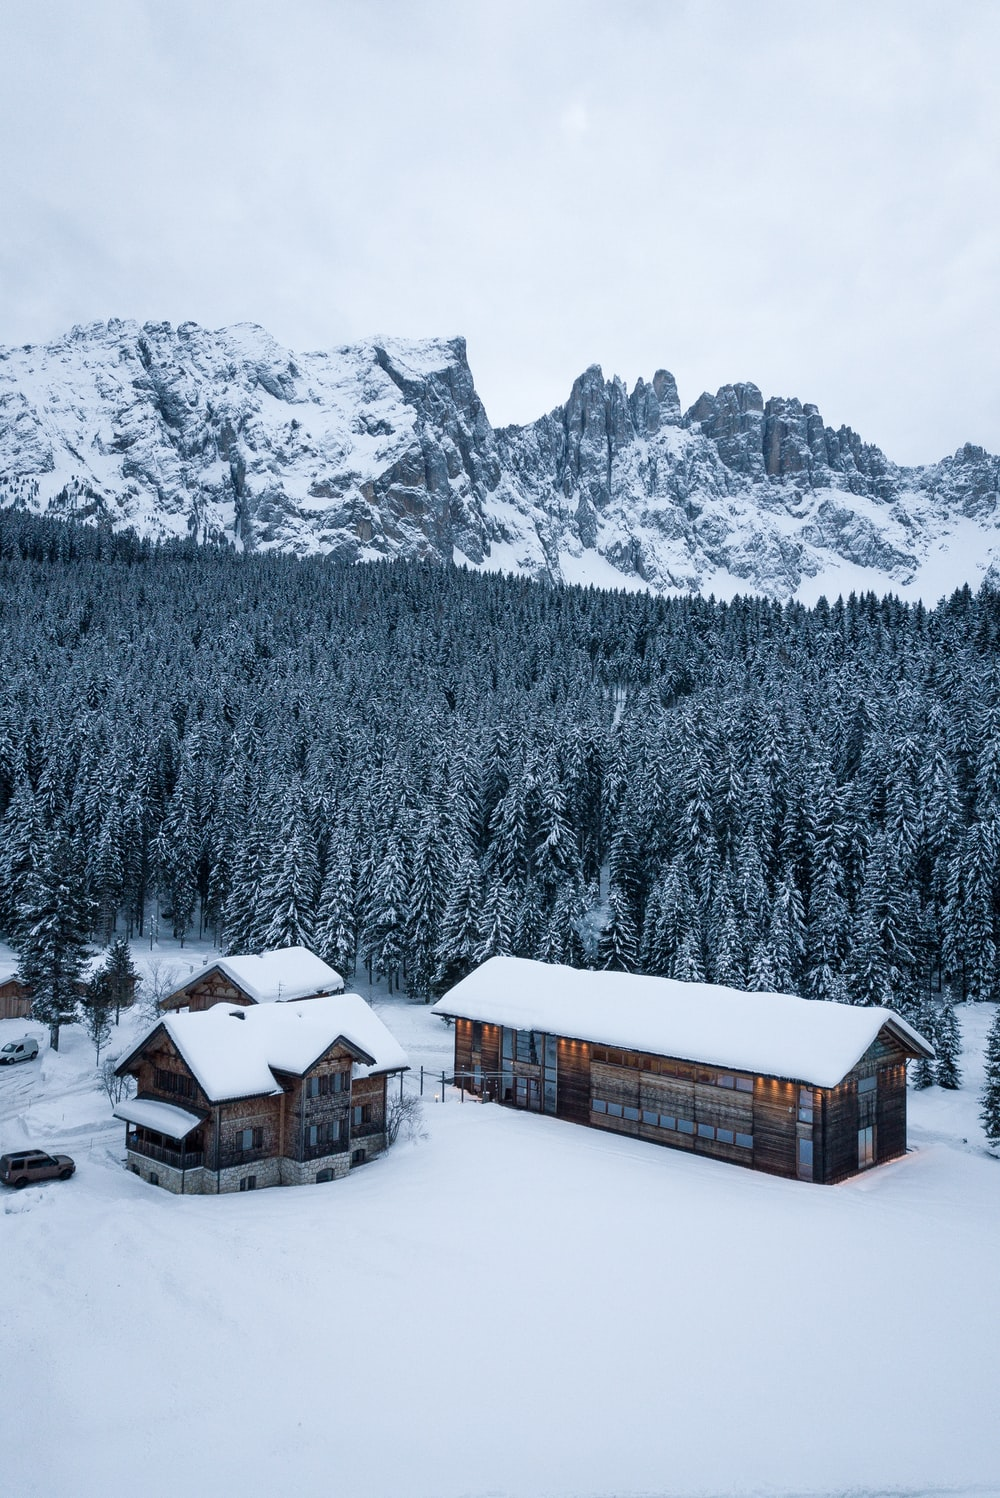 brown wooden houses on snow